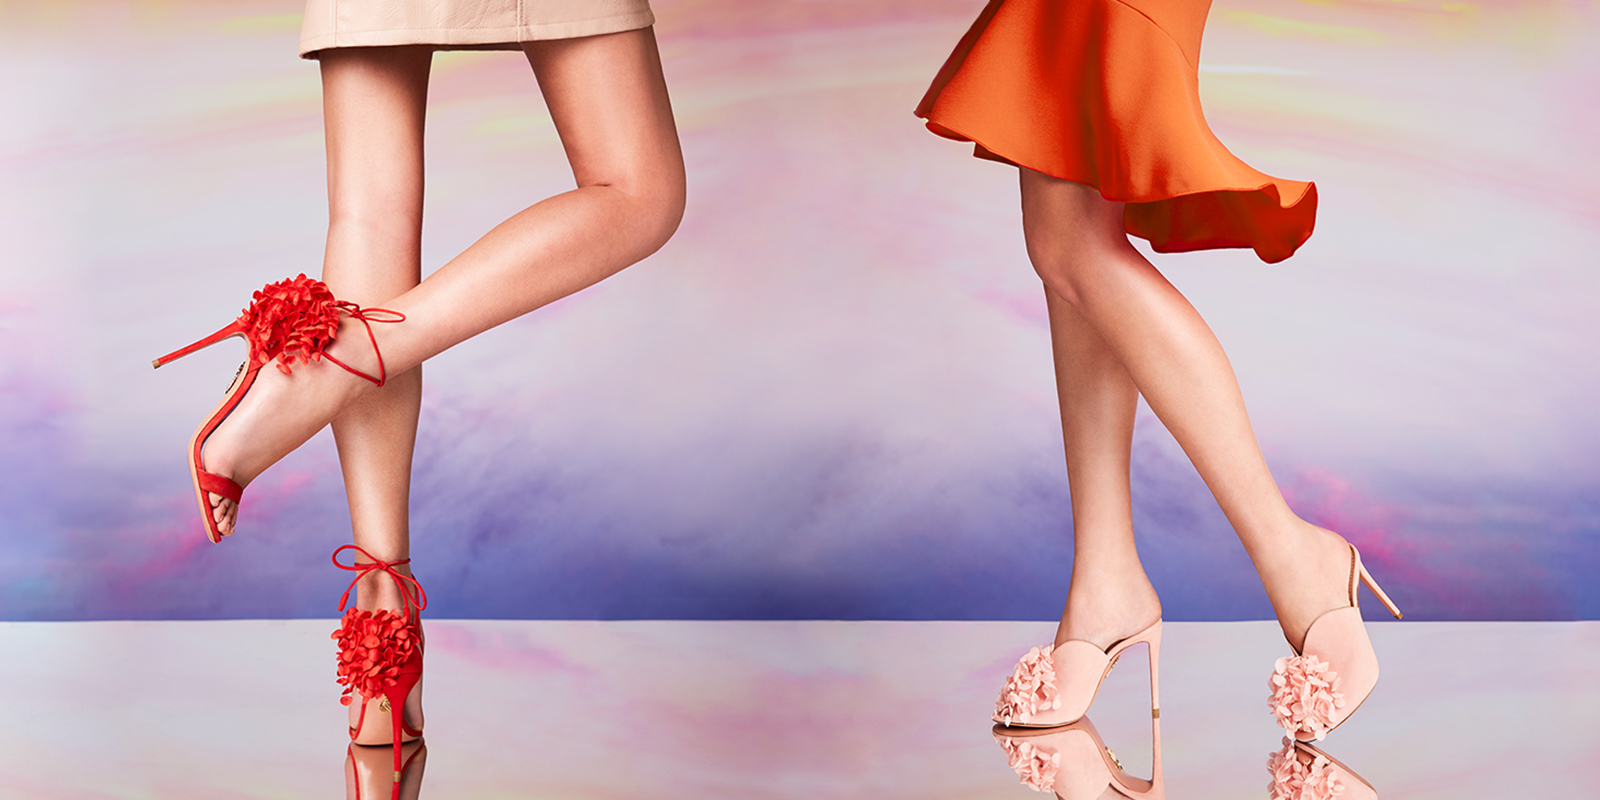 Aquazzura - Italian Shoe Brands We Love - made in italy - italian shoes - luxury shoes - italian shoe designers - Edgardo Osorio